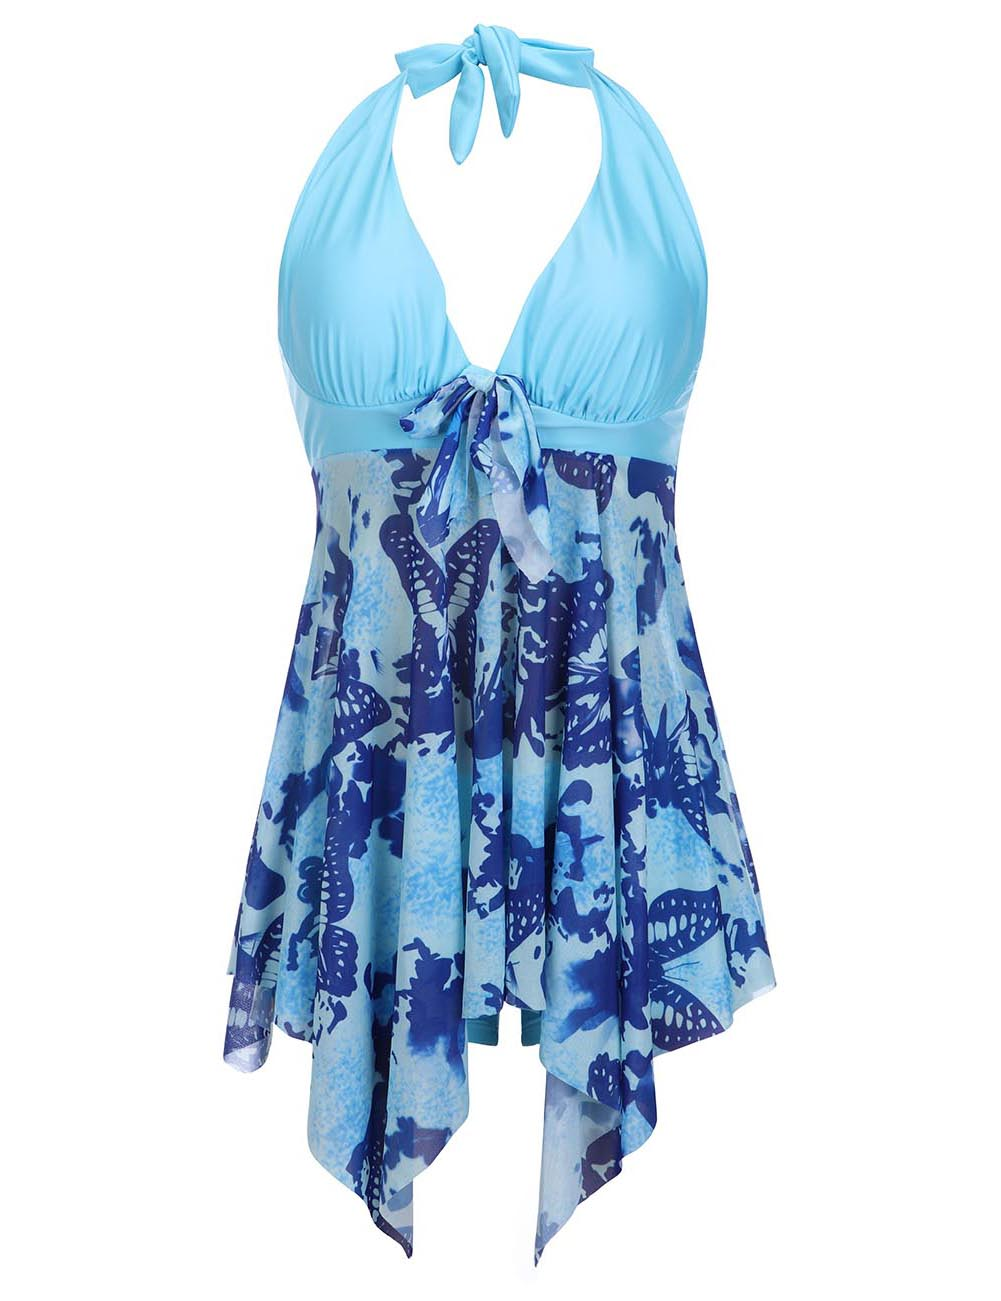 //cdn.affectcloud.com/hexinfashion/upload/imgs/Swimwear/Tankini/F195157-BU1/F195157-BU1-201911065dc27263851c6.jpg